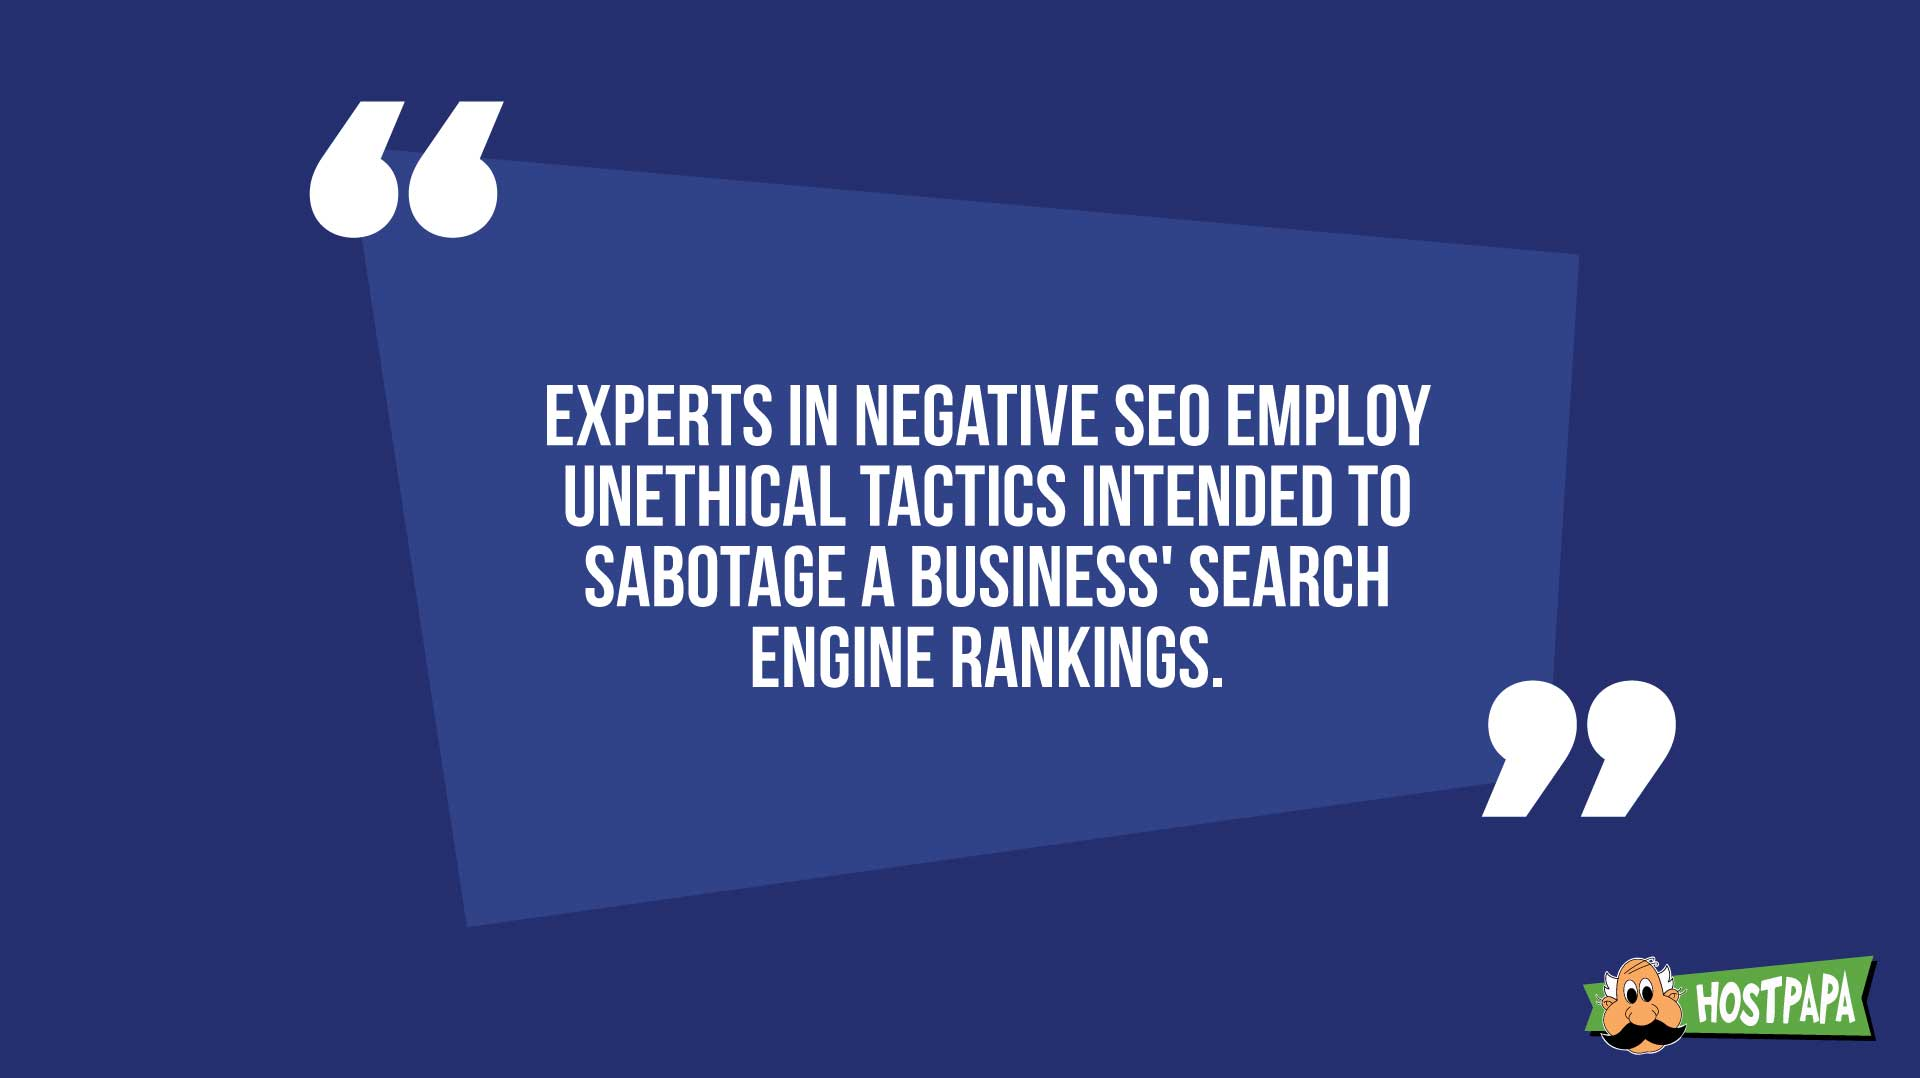 Experts in negative SEO employ unethical tactics intended to sabotage a business' search engine rankings